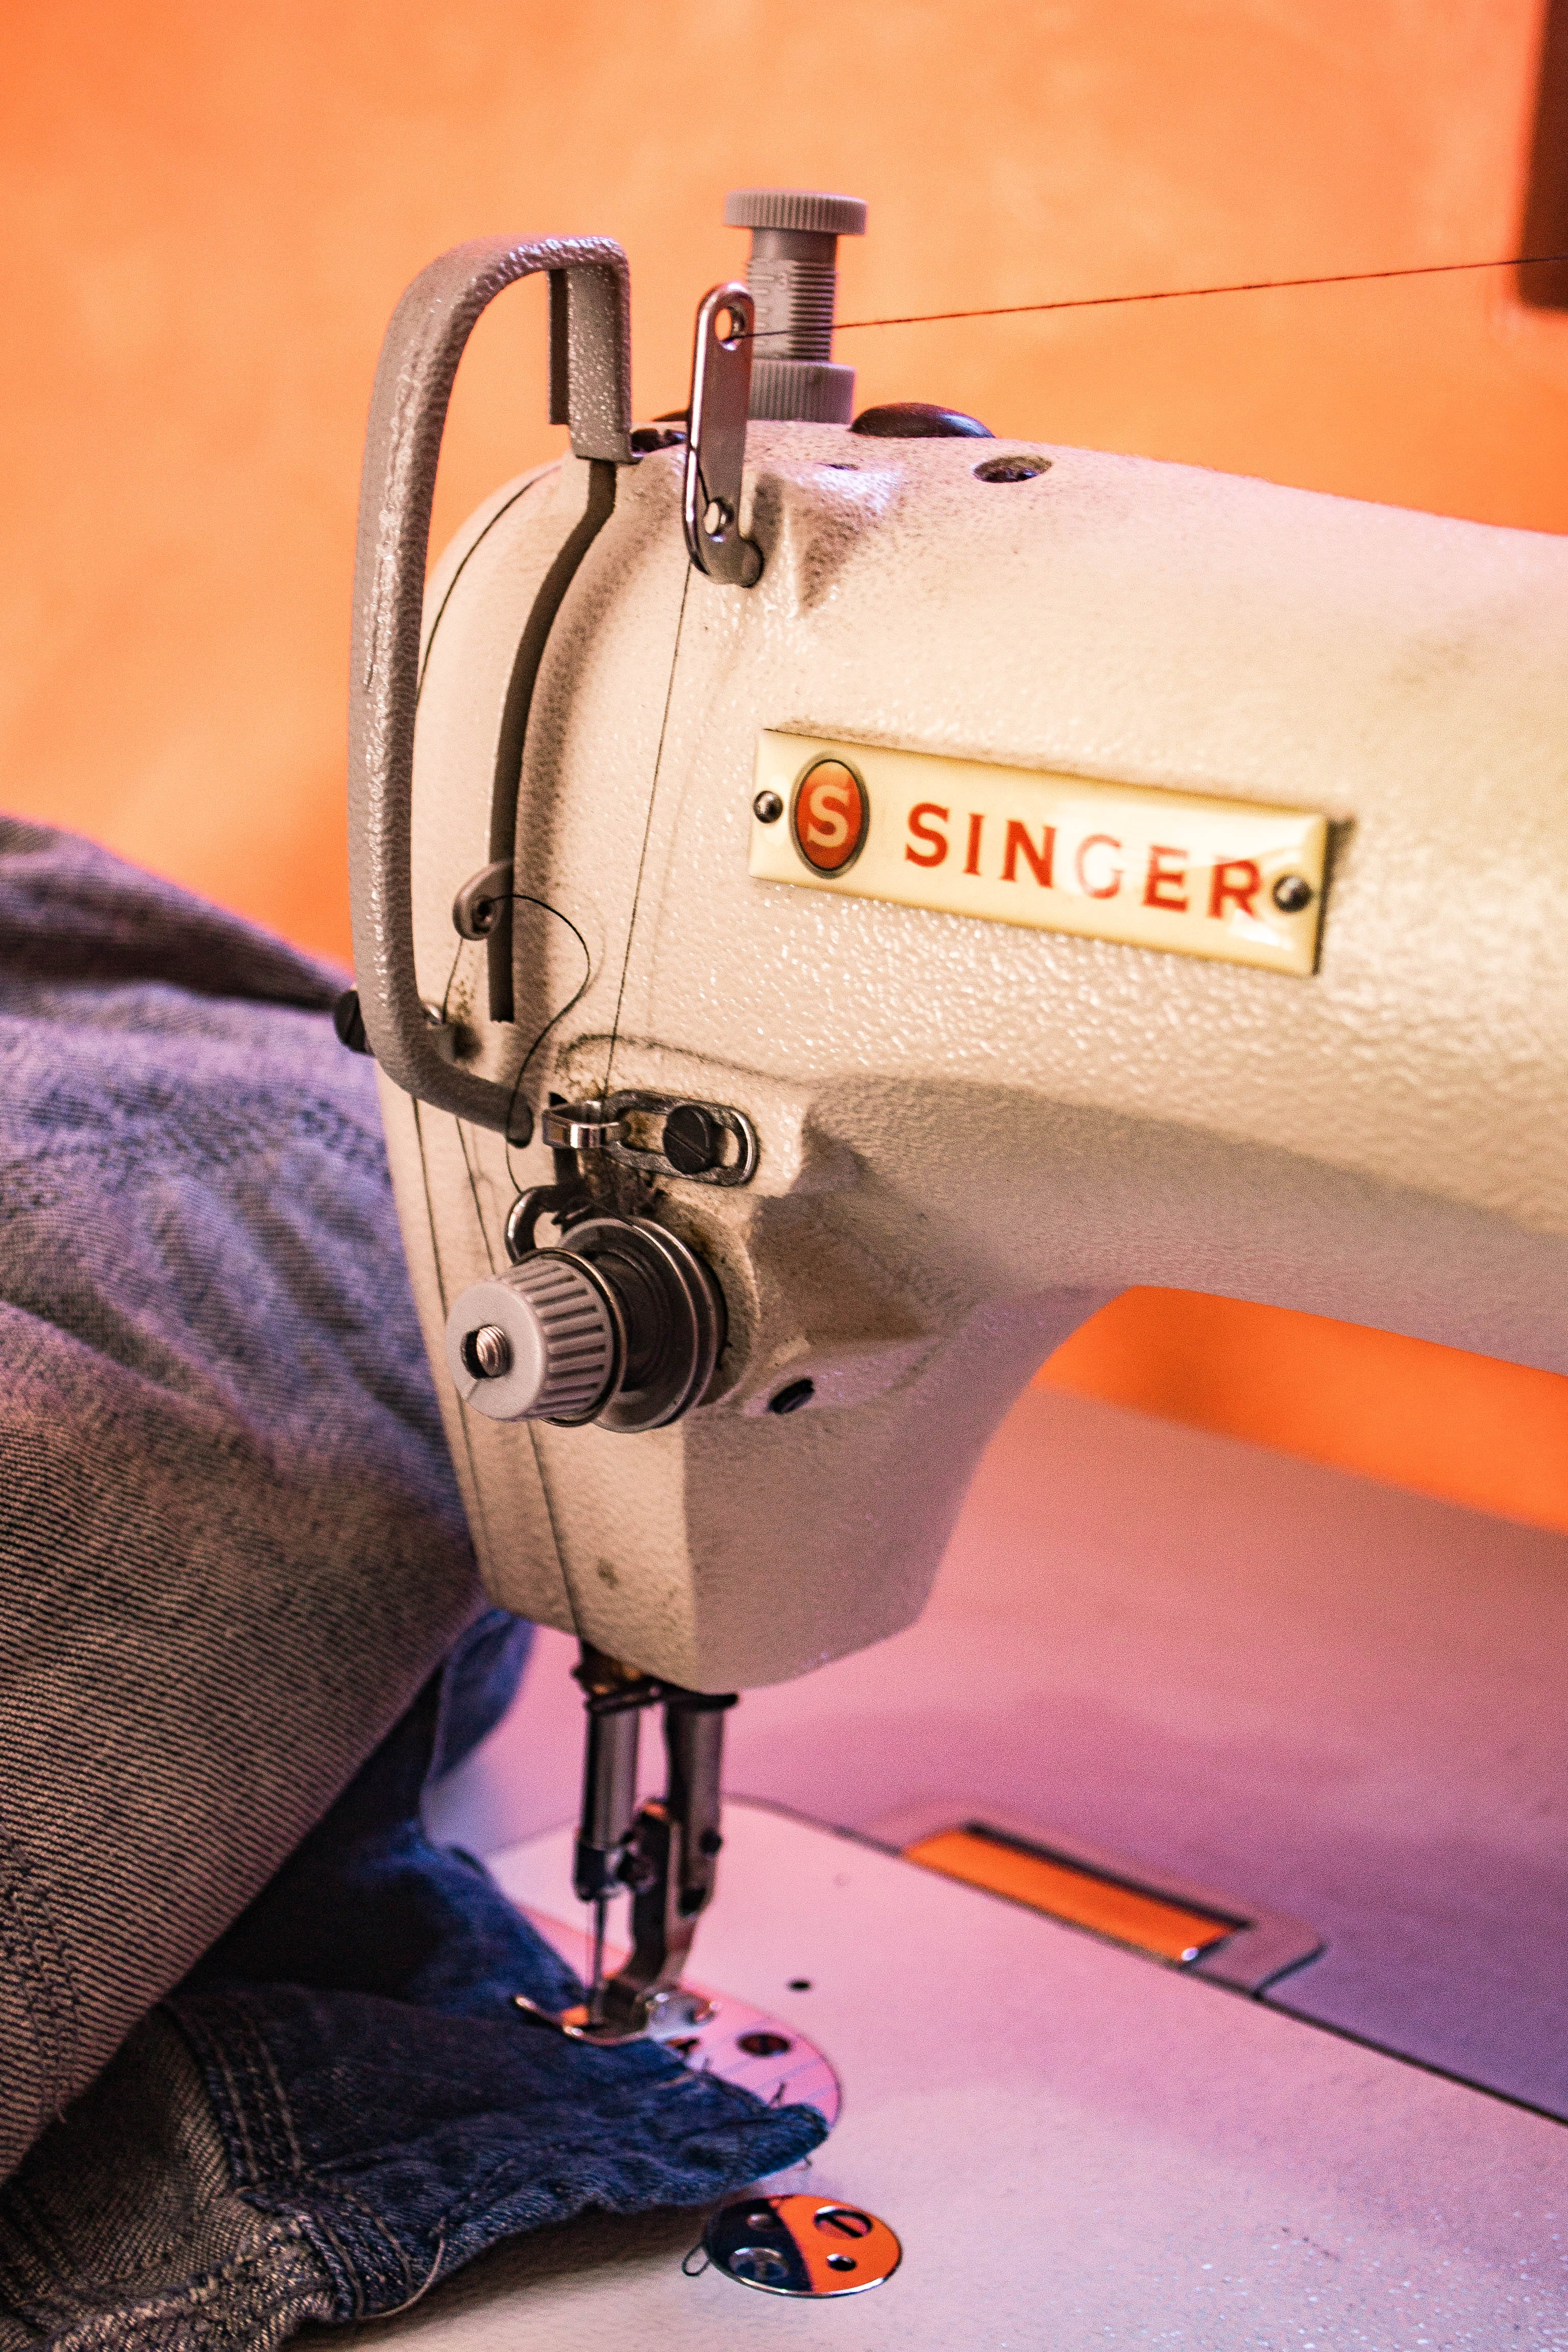 White Singer Sewing Machine on gradient background - make money iPhone photos